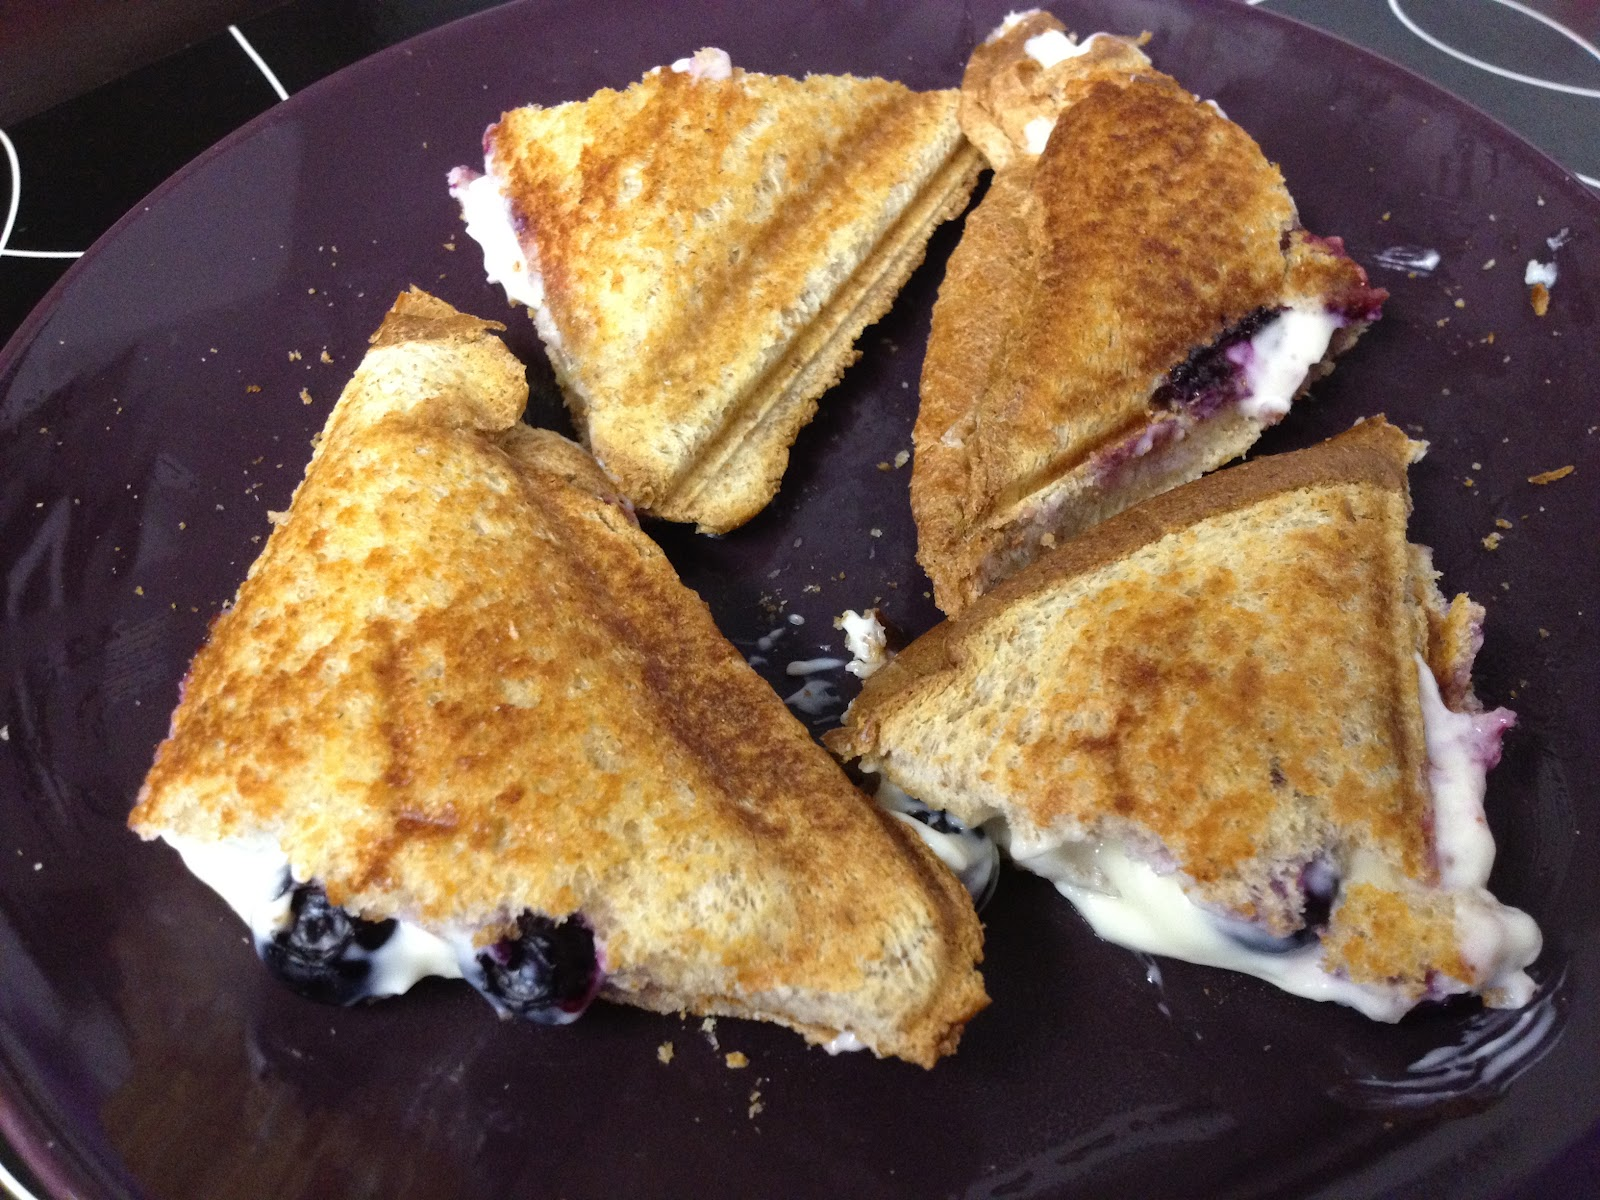 Blueberry breakfast grilled cheese sandwich